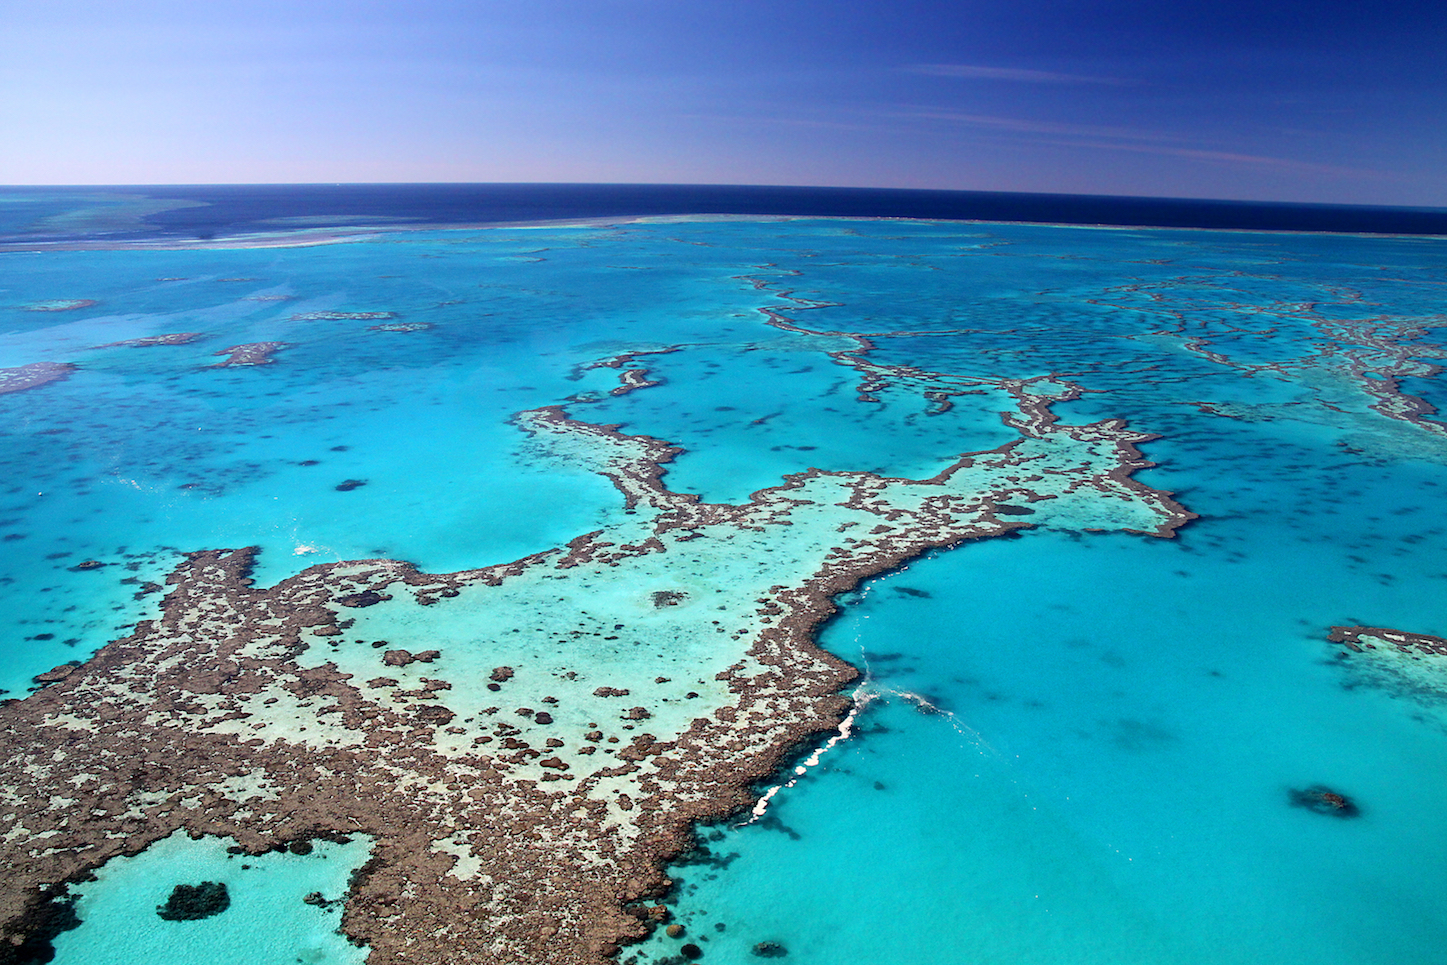 An estimated 29 percent of shallow water corals in the Great Barrier Reef off the coast of Australia died from bleaching in 2016.